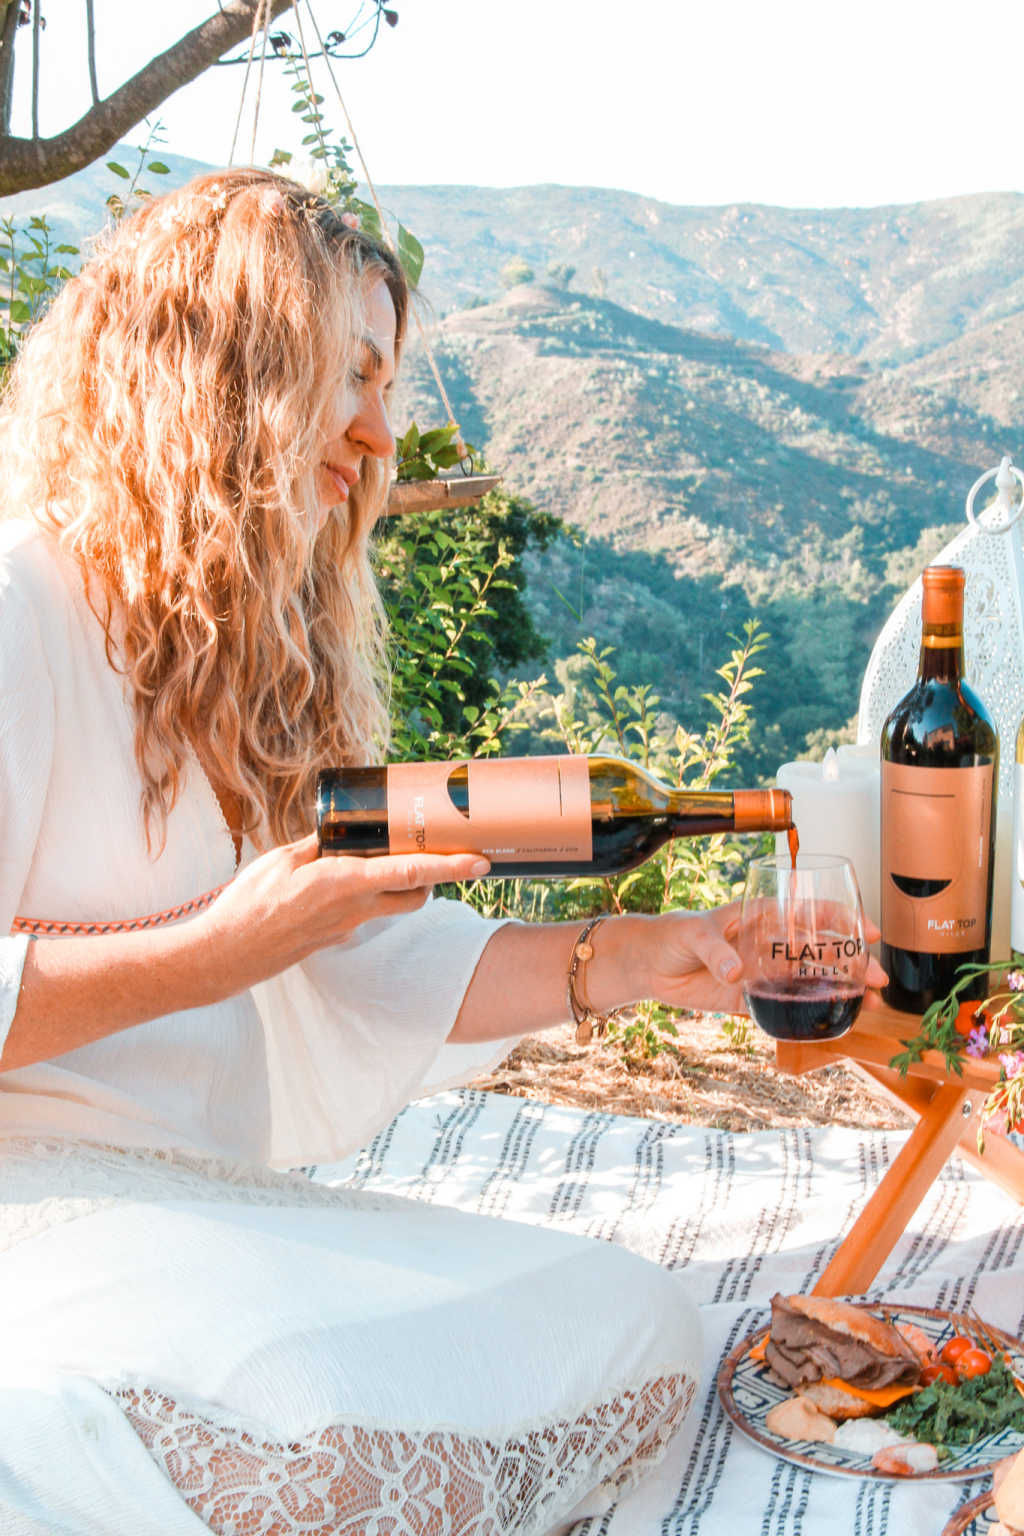 Flat Top Wines Red Blend for a romantic picnic date | Poplolly co